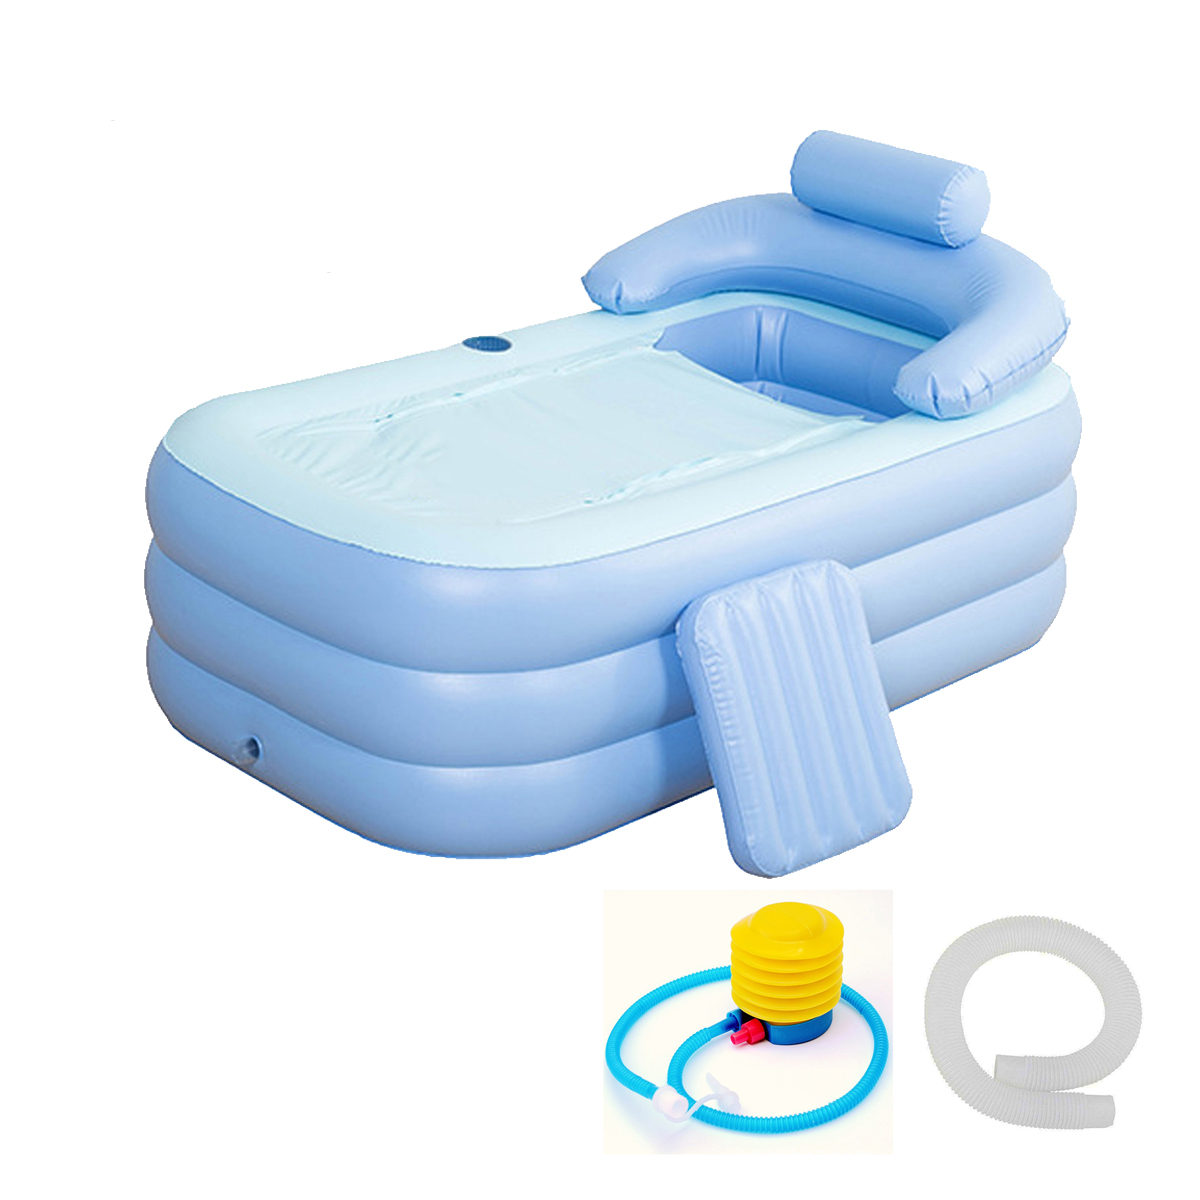 1Set 160 84 64cm Foldable Inflatable Bath Tub PVC Adult Bathtub with Air Pump Household Indoor